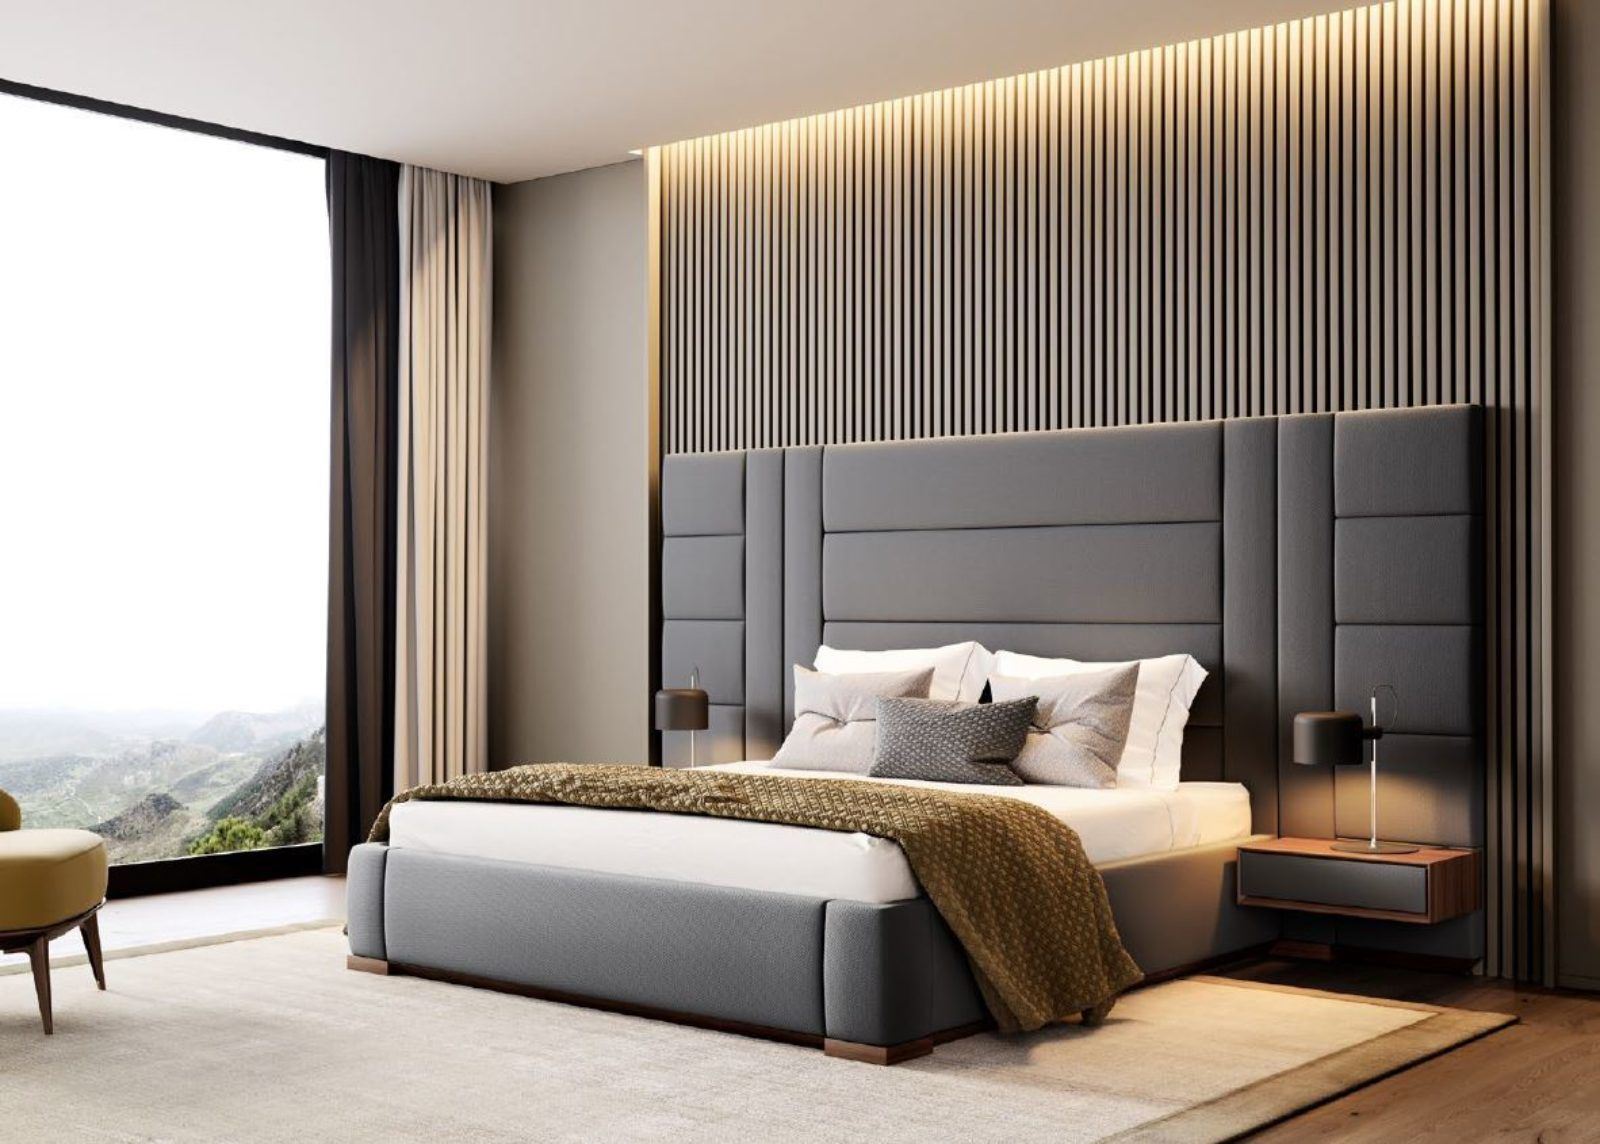 alvor bedroom zoli contemporary living room design on dreamy luxurious master bedroom designs and decor ideas id=37192